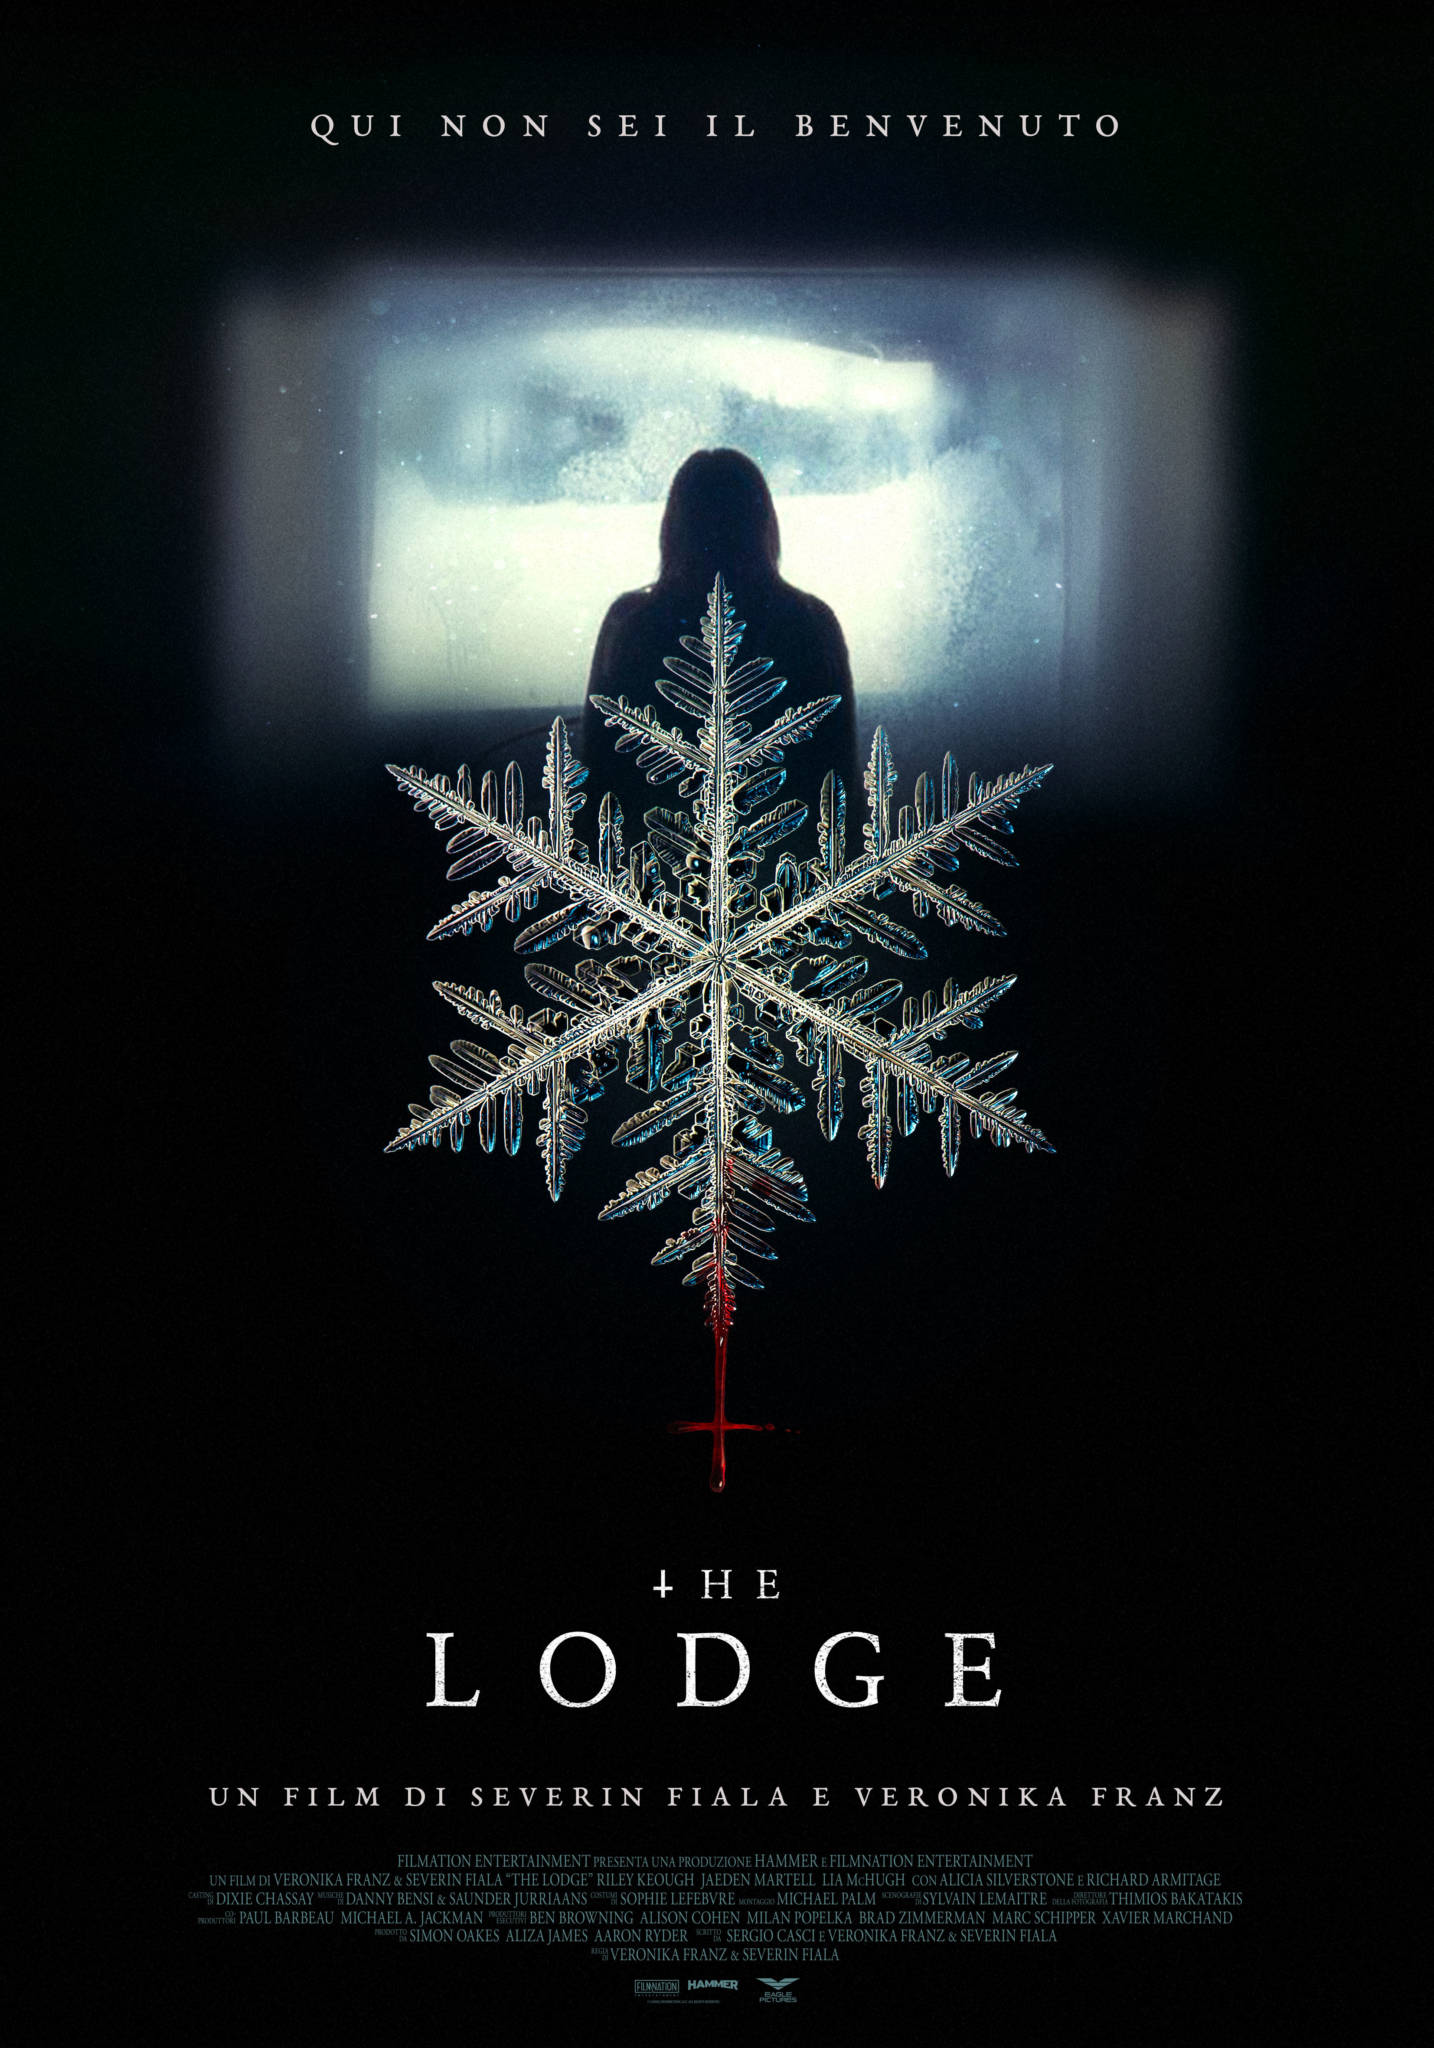 [RECENSIONE] The Lodge